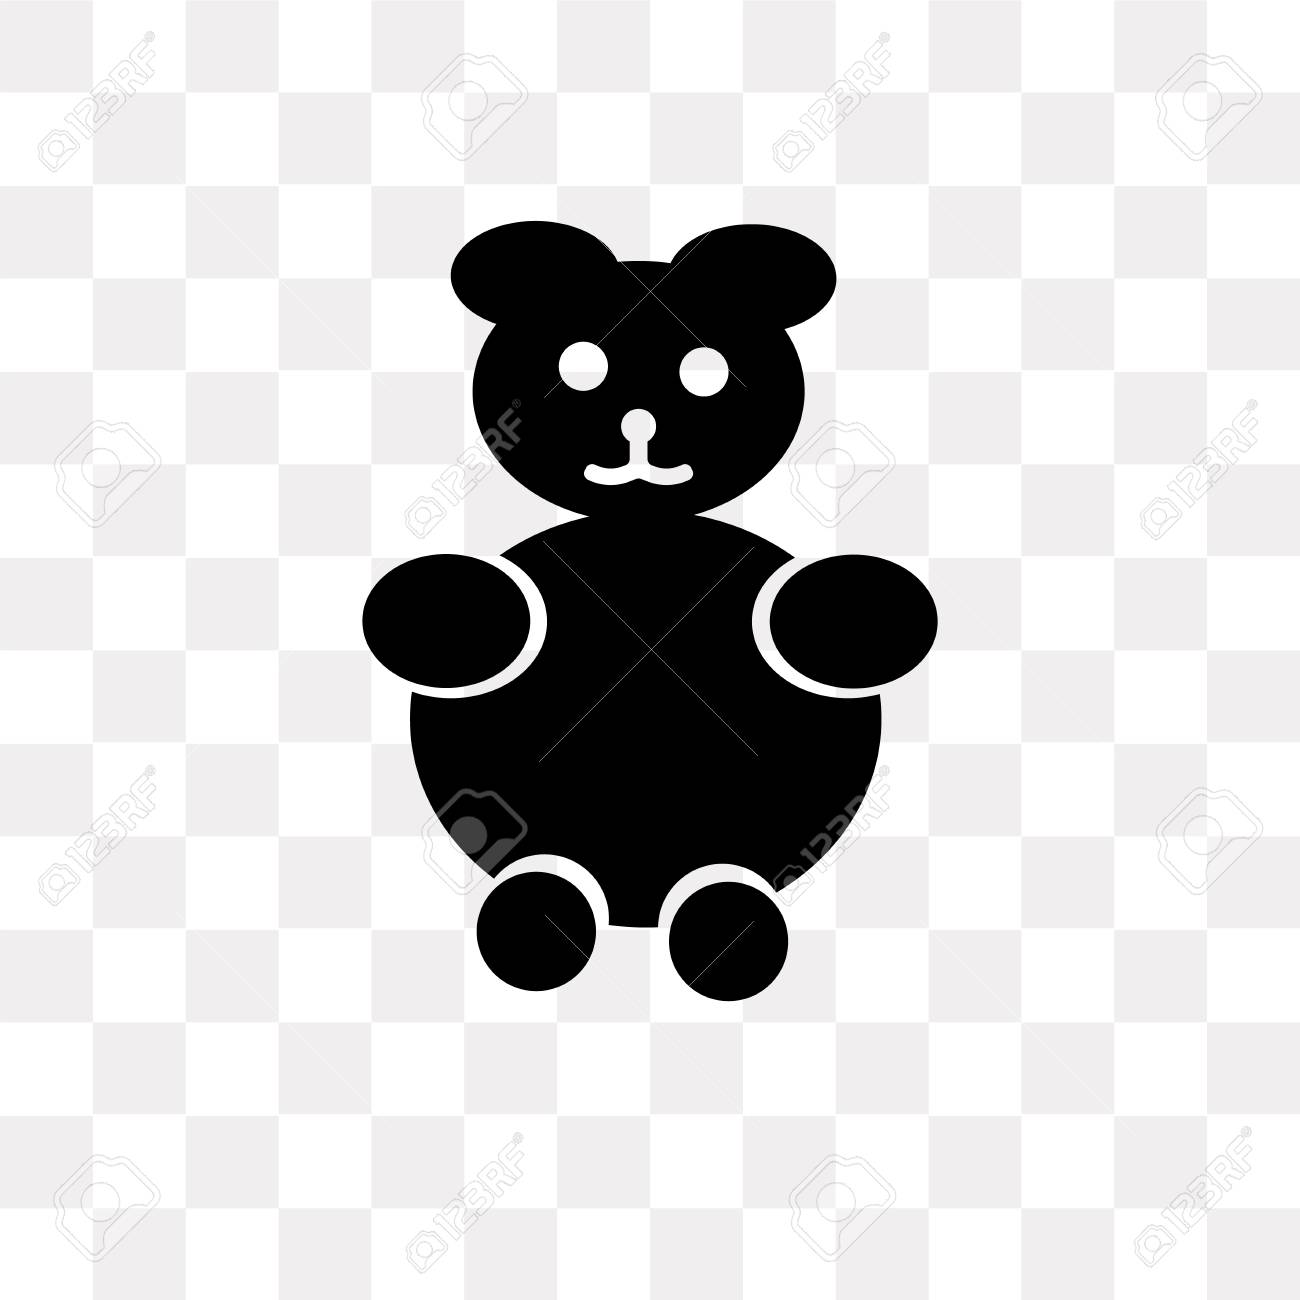 teddy bear vector icon isolated on transparent background teddy royalty free cliparts vectors and stock illustration image 107871315 teddy bear vector icon isolated on transparent background teddy